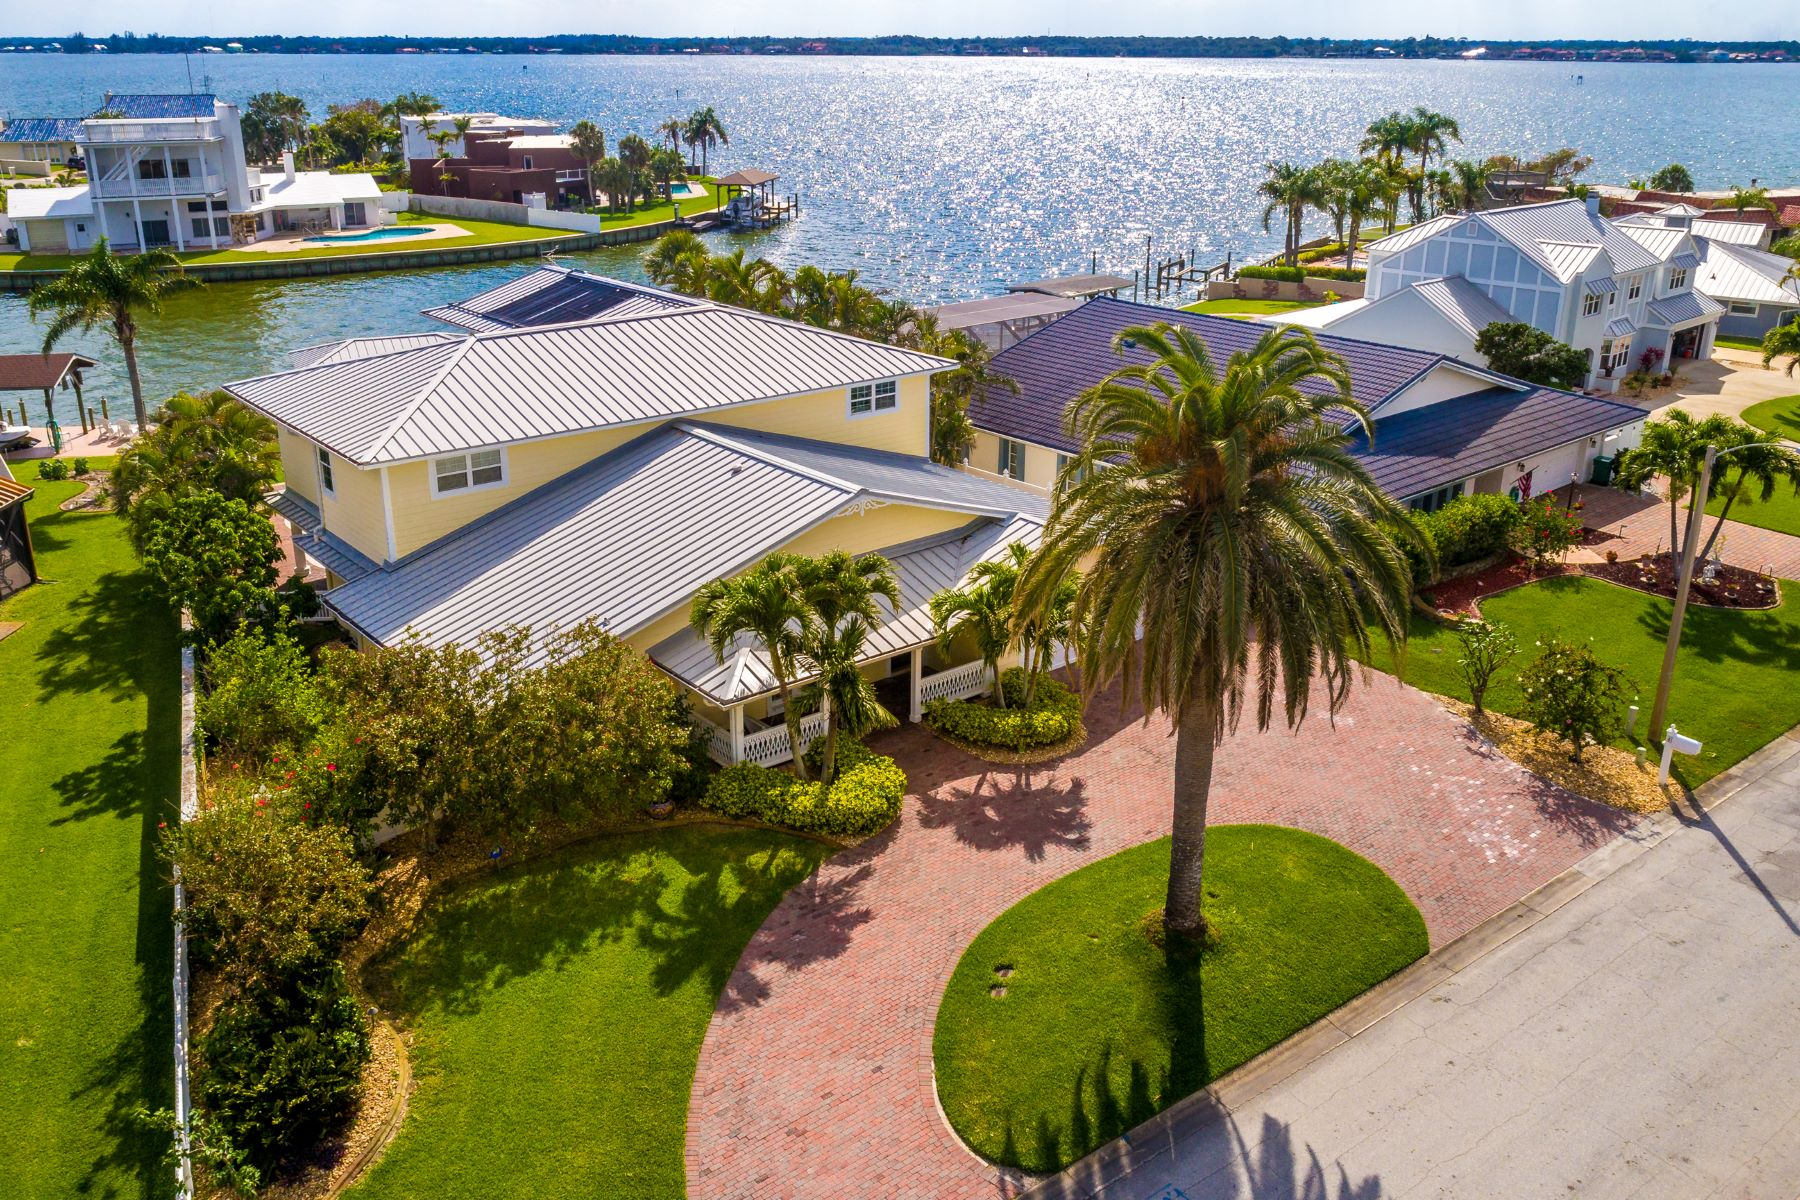 Single Family Home for Sale at Spectacular Waterfront Home 4 Willow Green Dr. Cocoa Beach, Florida 32931 United States